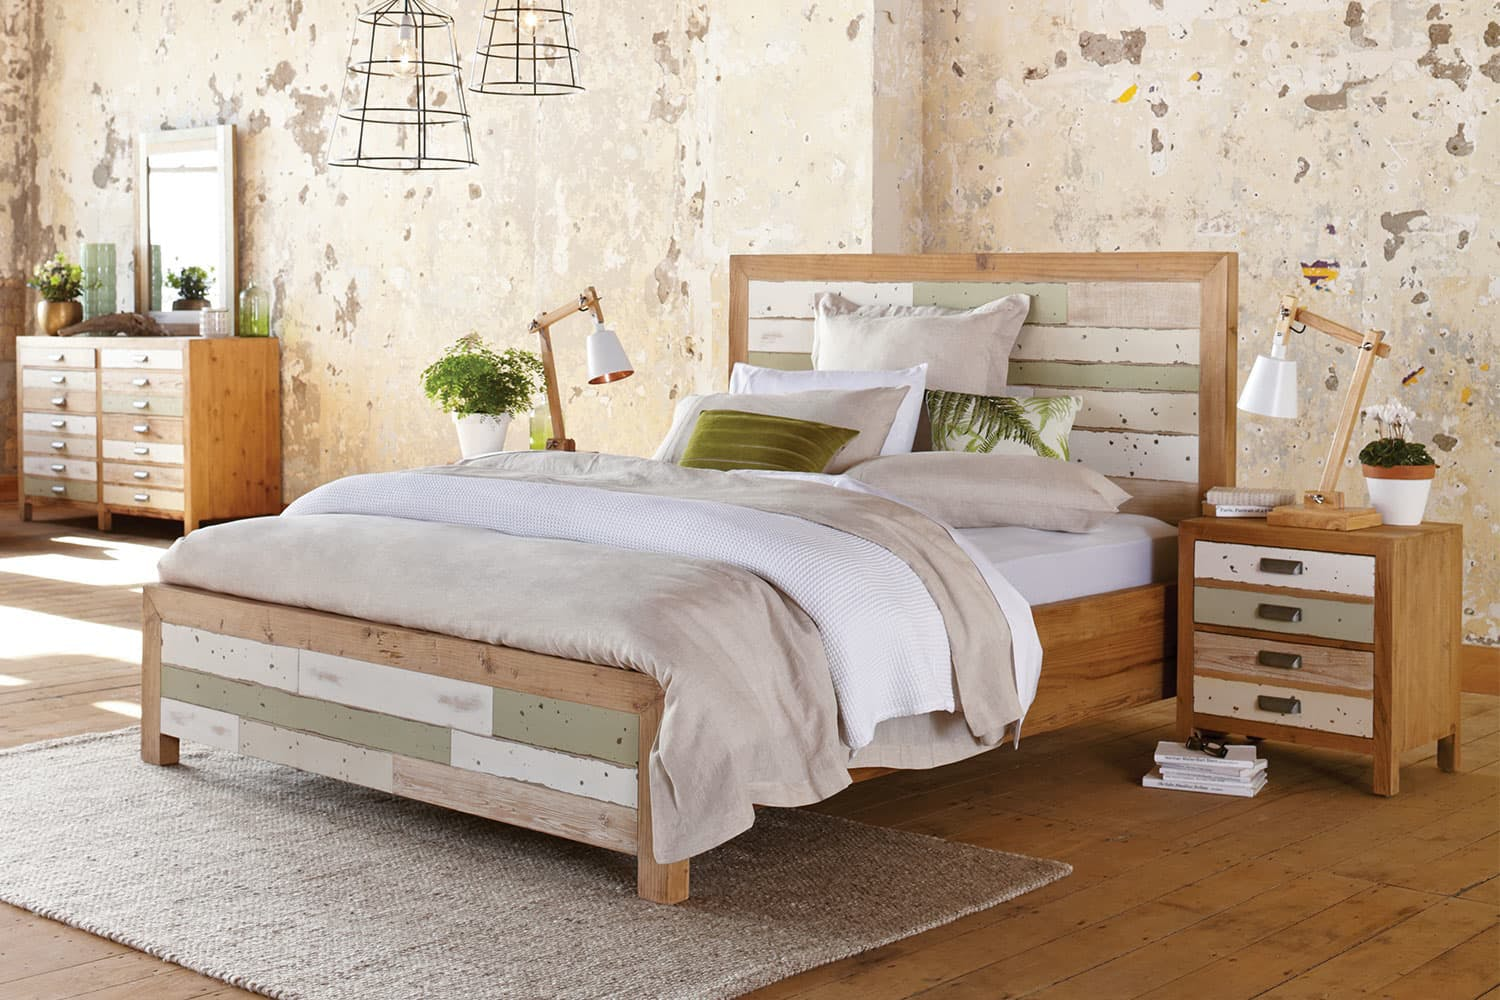 Trend king bed frame by vivin harvey norman new zealand - Harvey norman bedroom sets ...